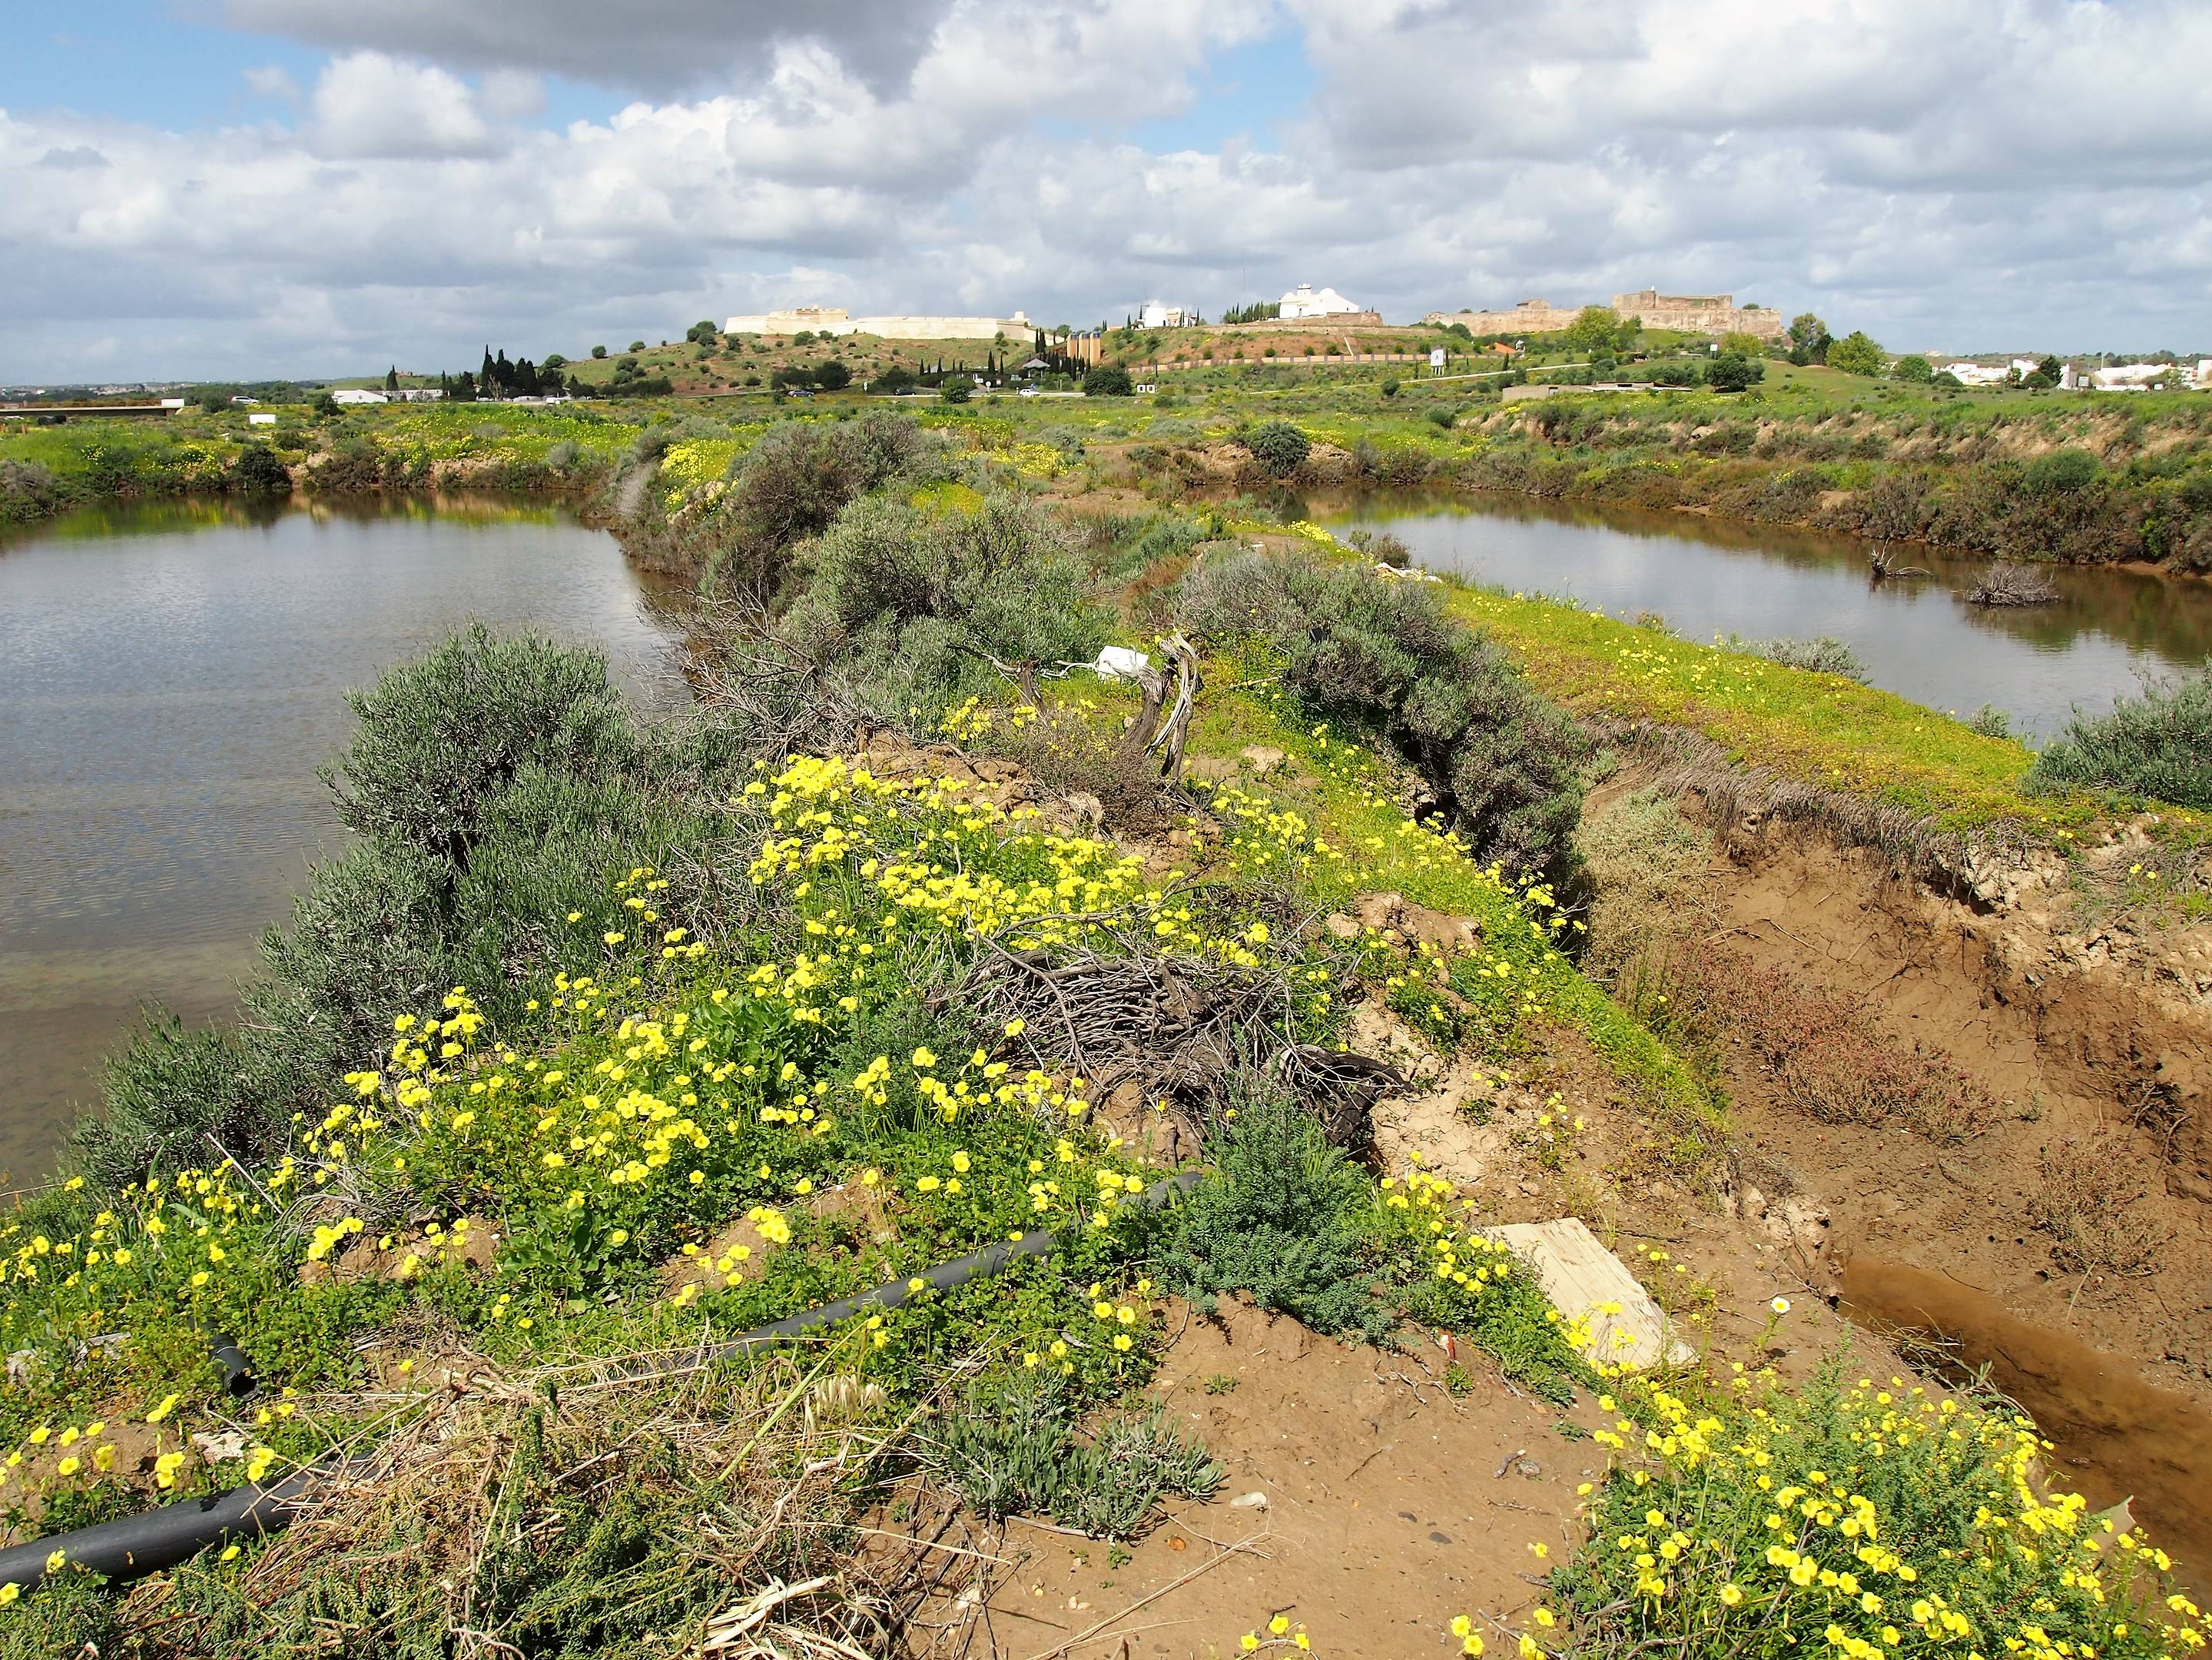 Salt pans at Castro Marim, with the Fort and the Castle in the background.